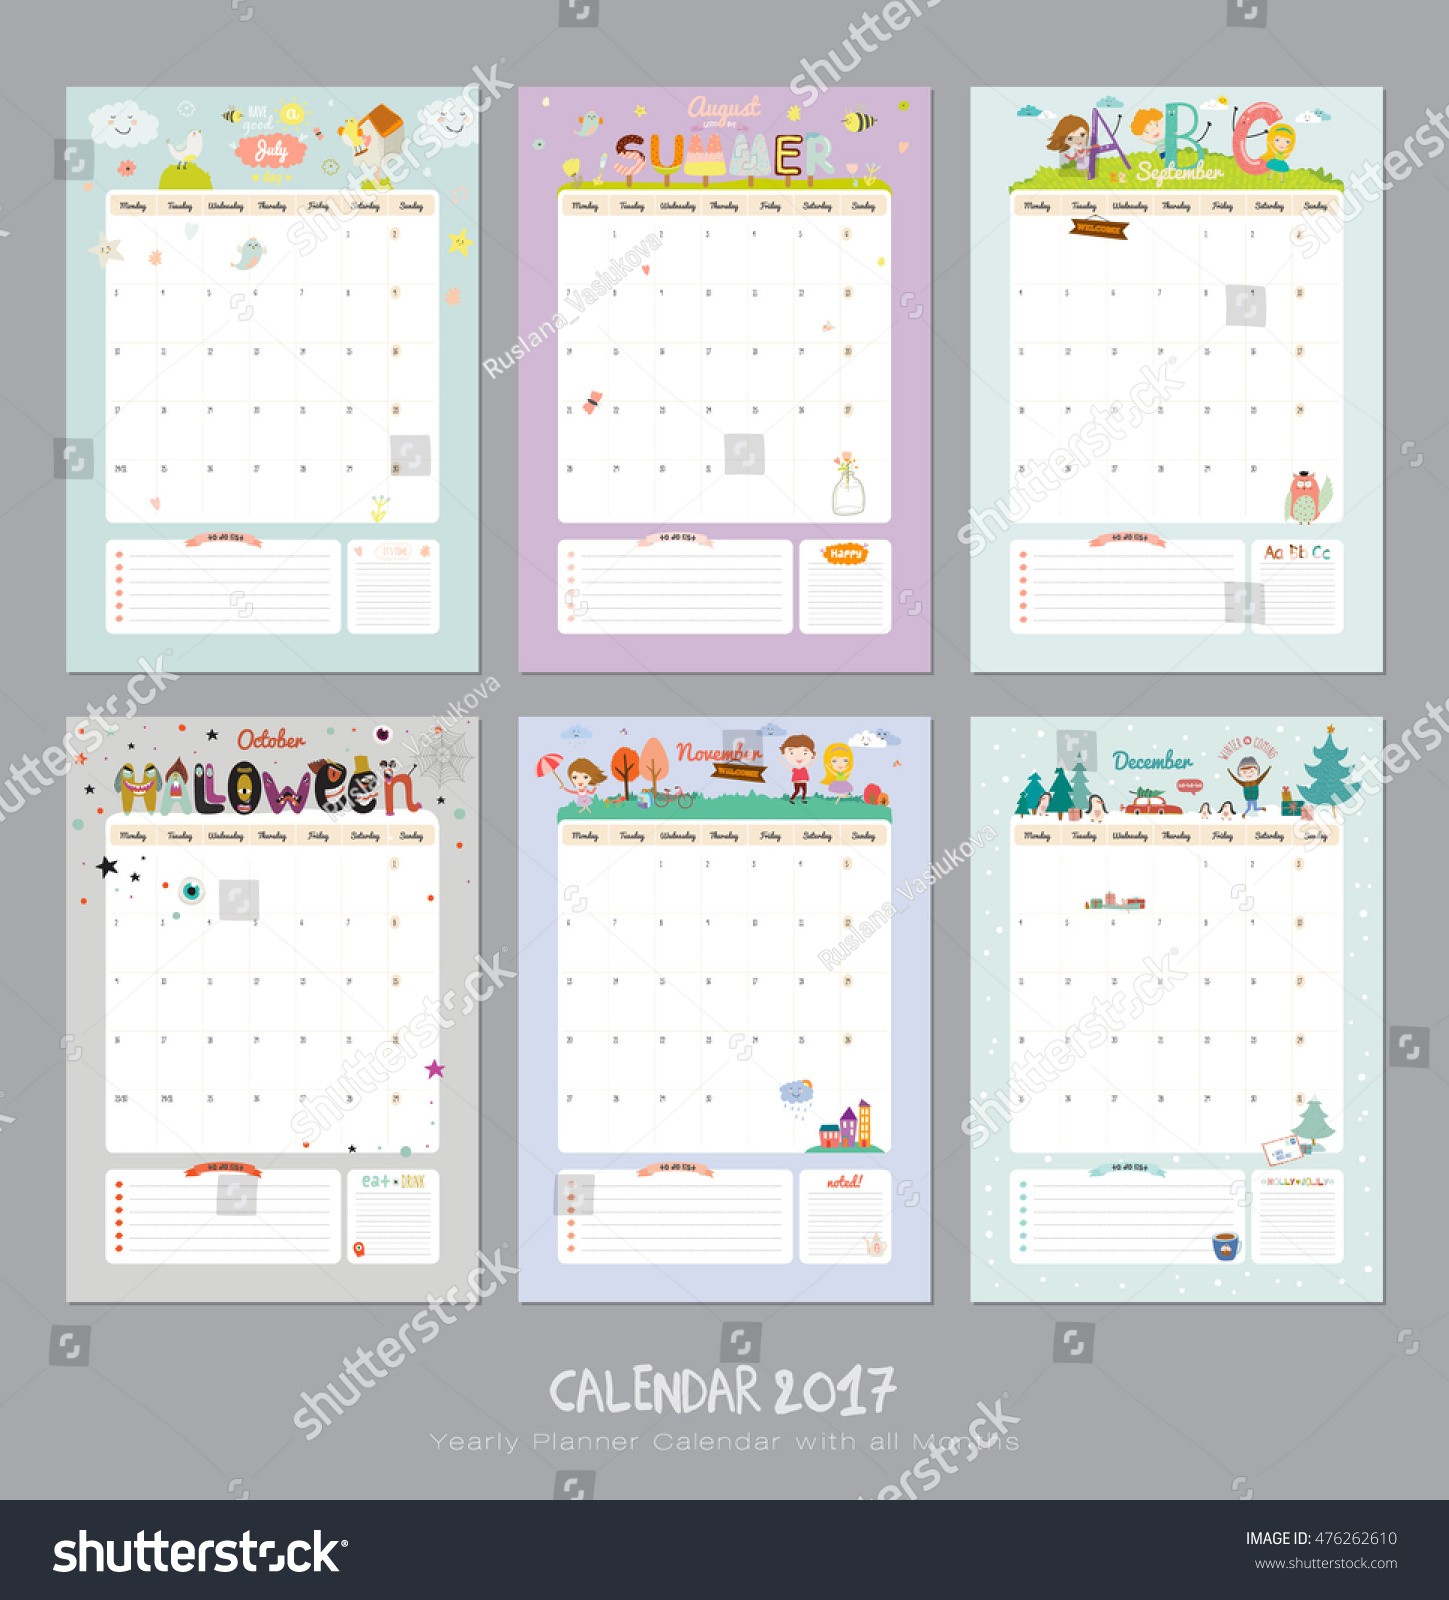 Calendar All Months : Cute calendar template yearly planner stock vector